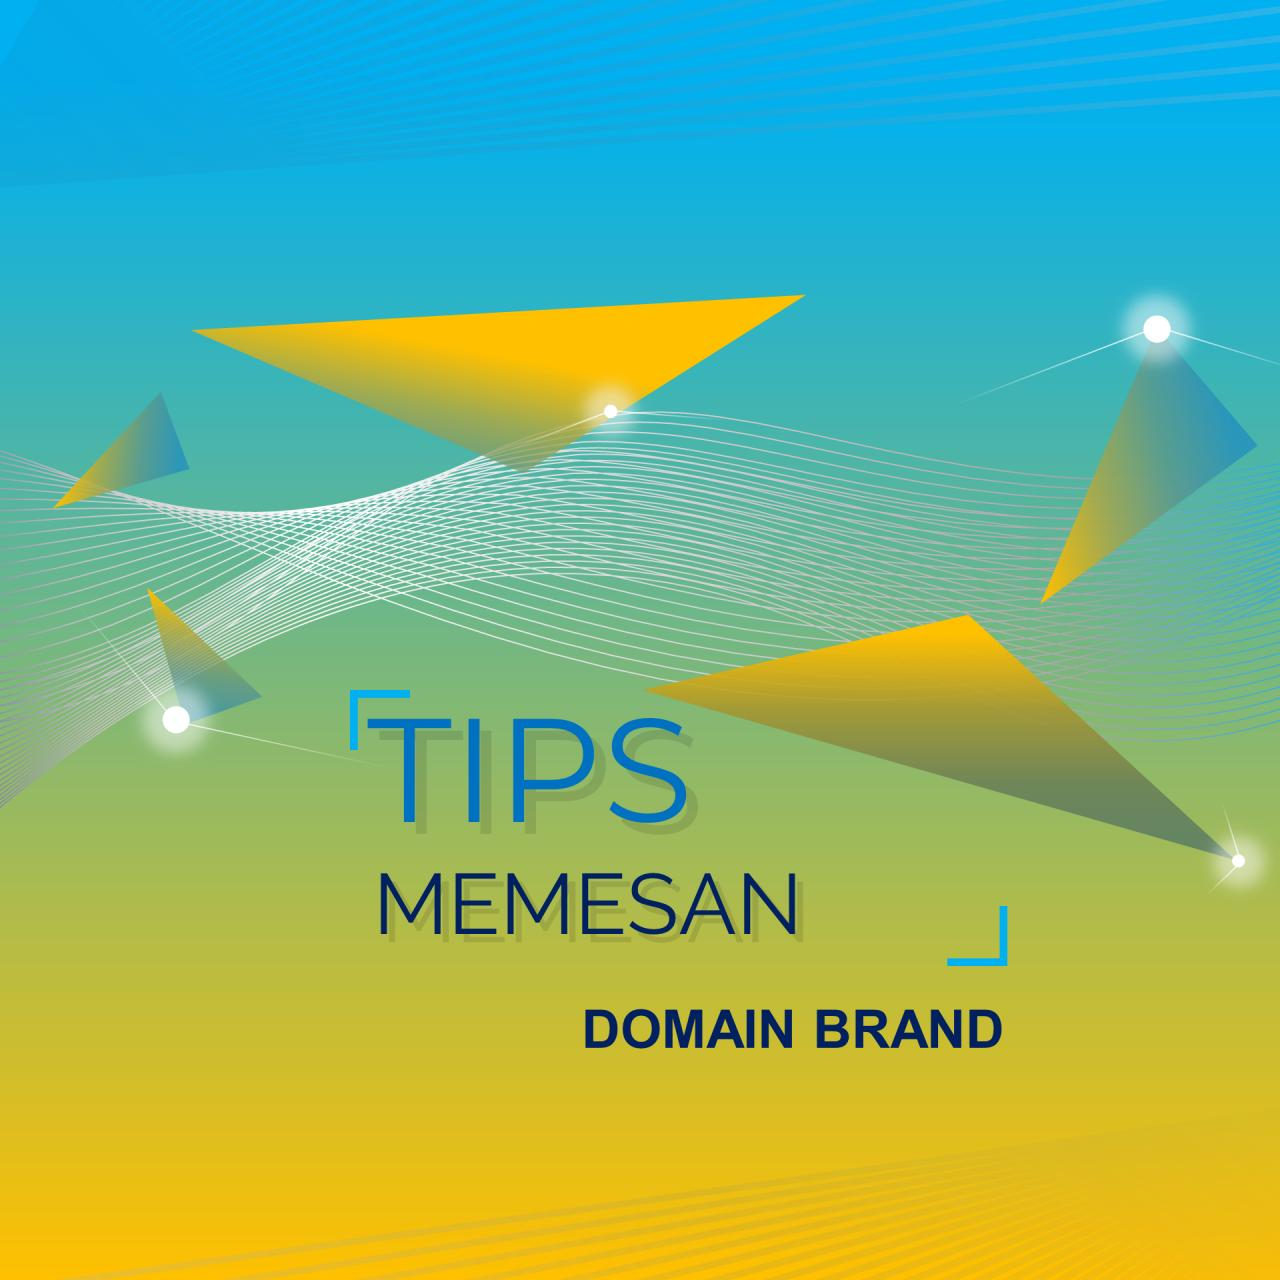 Tips Memesan Domain Brand